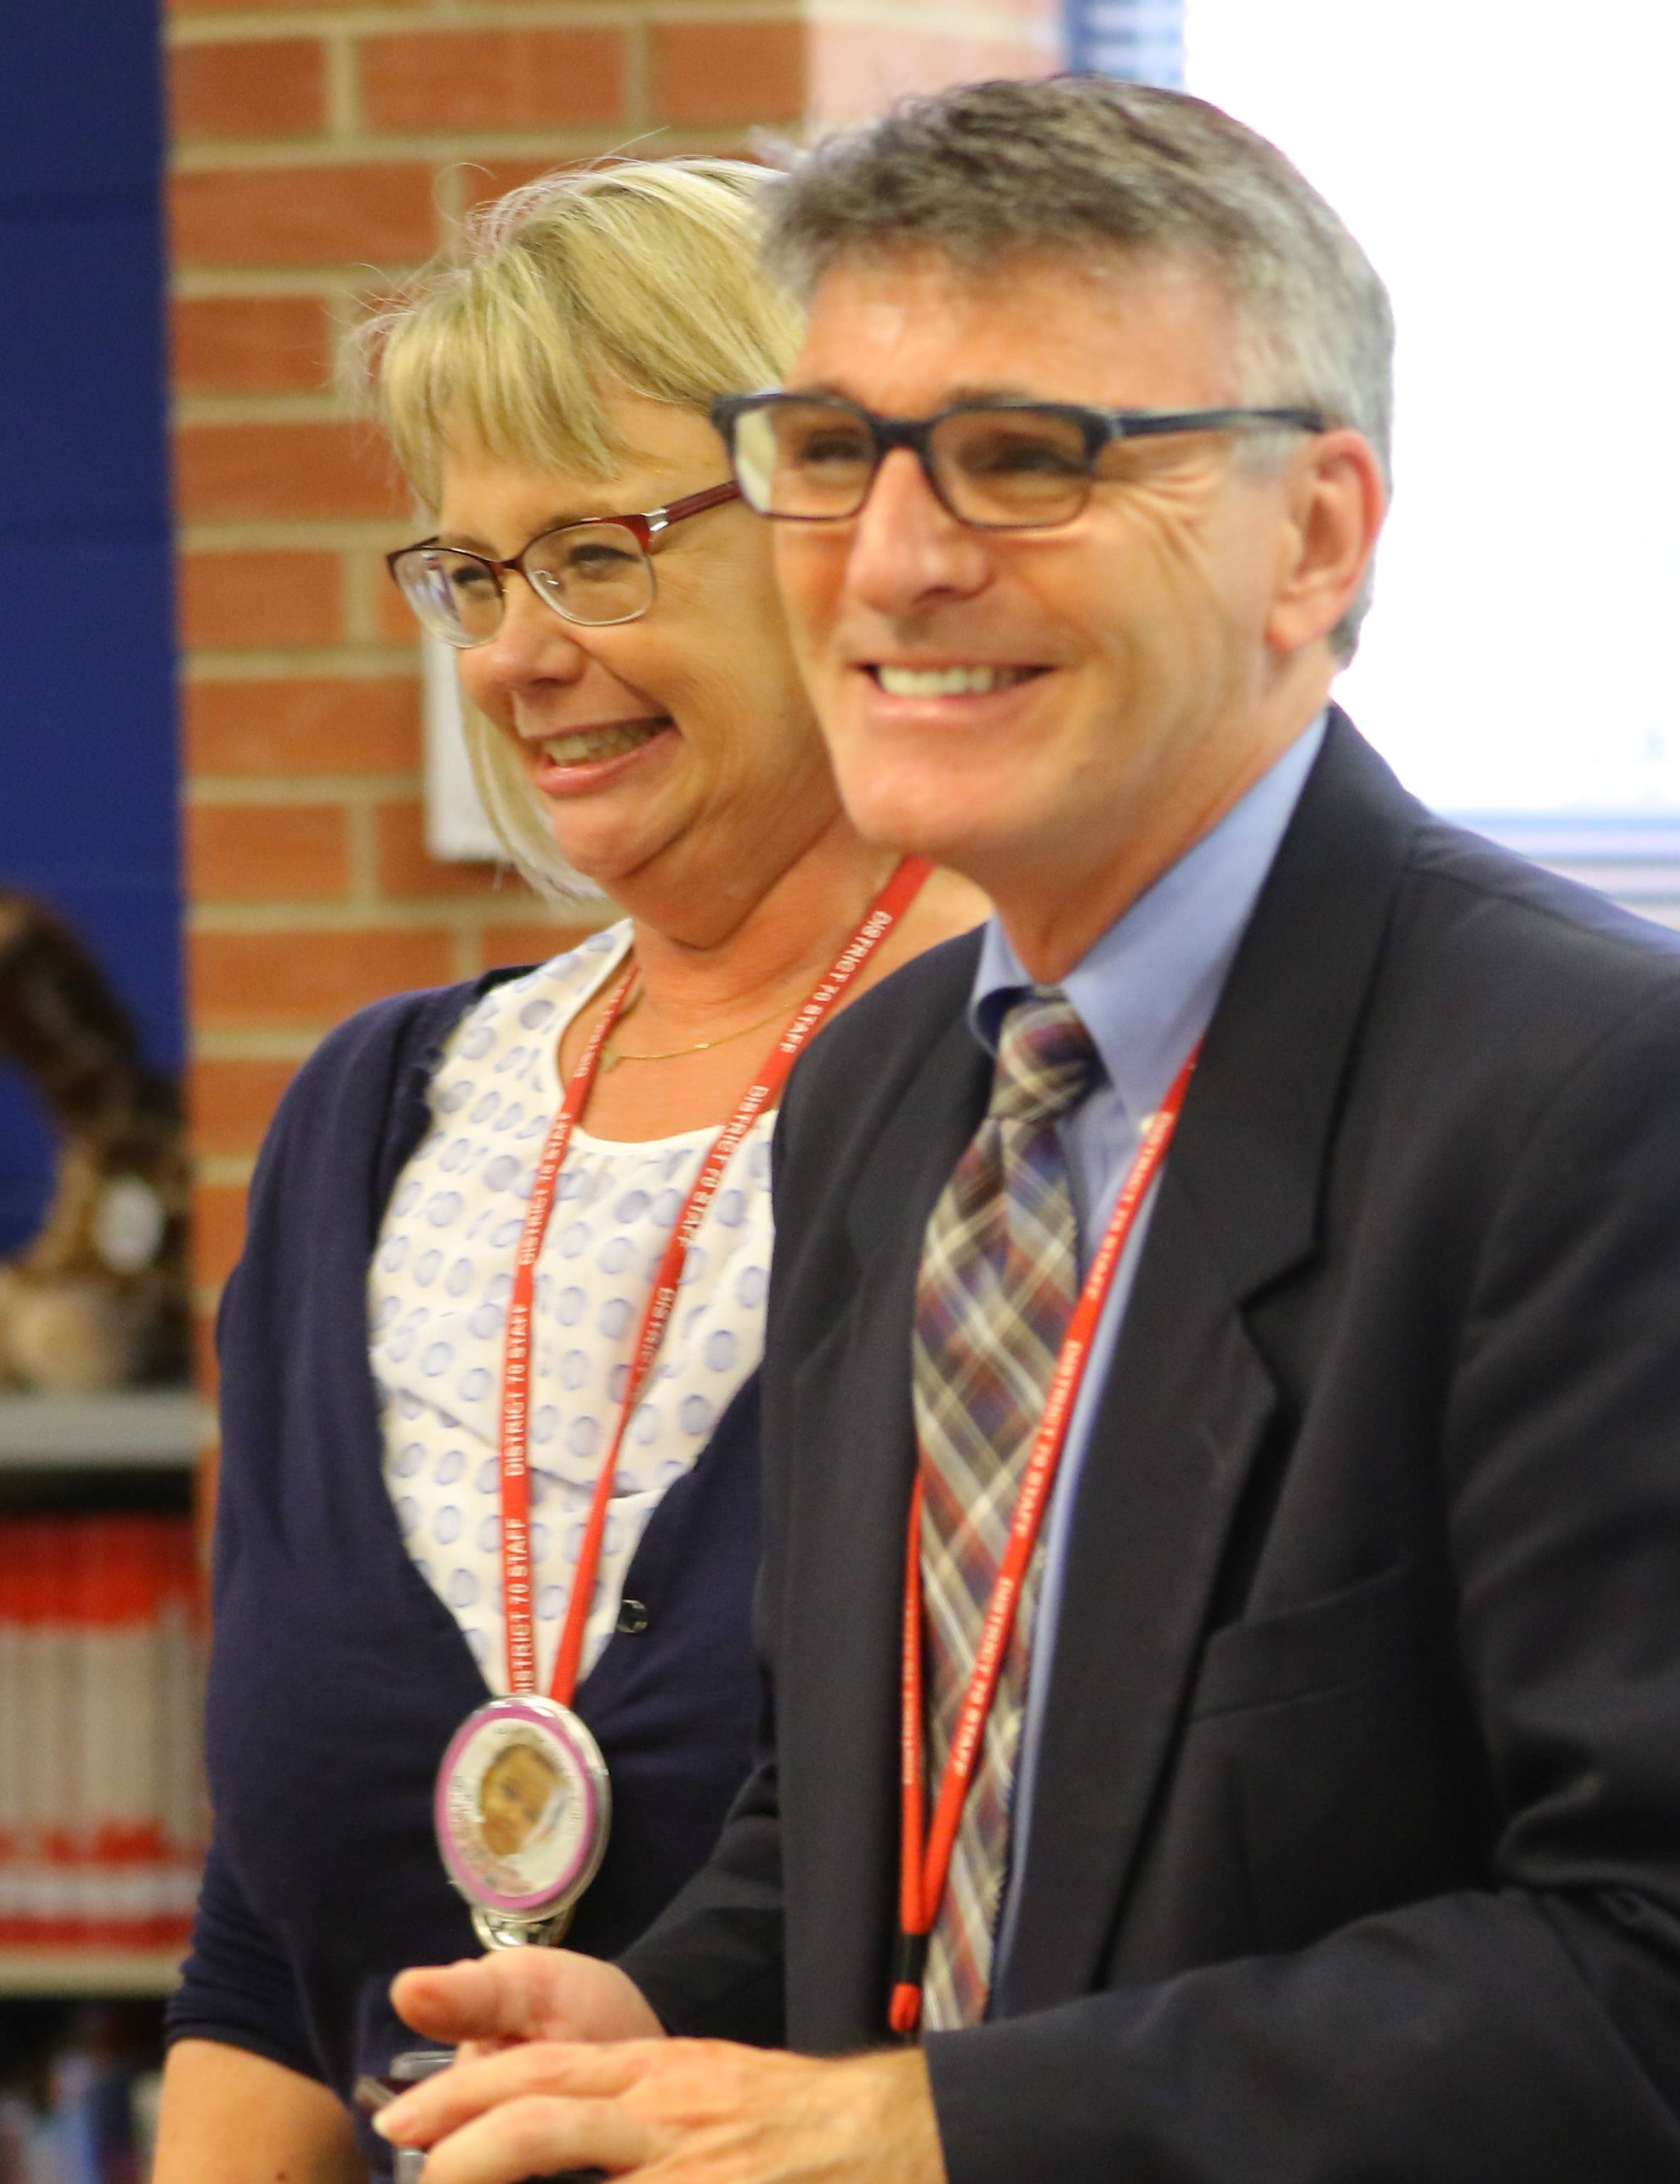 Copeland Manor School Principal Lori Poelking, left, and Libertyville Elementary District 70 Superintendent Guy Schumacher smile Thursday after hearing the school is among those being honored by the U.S. Department of Education as a 2017 National Blue Ribbon School Award winner.